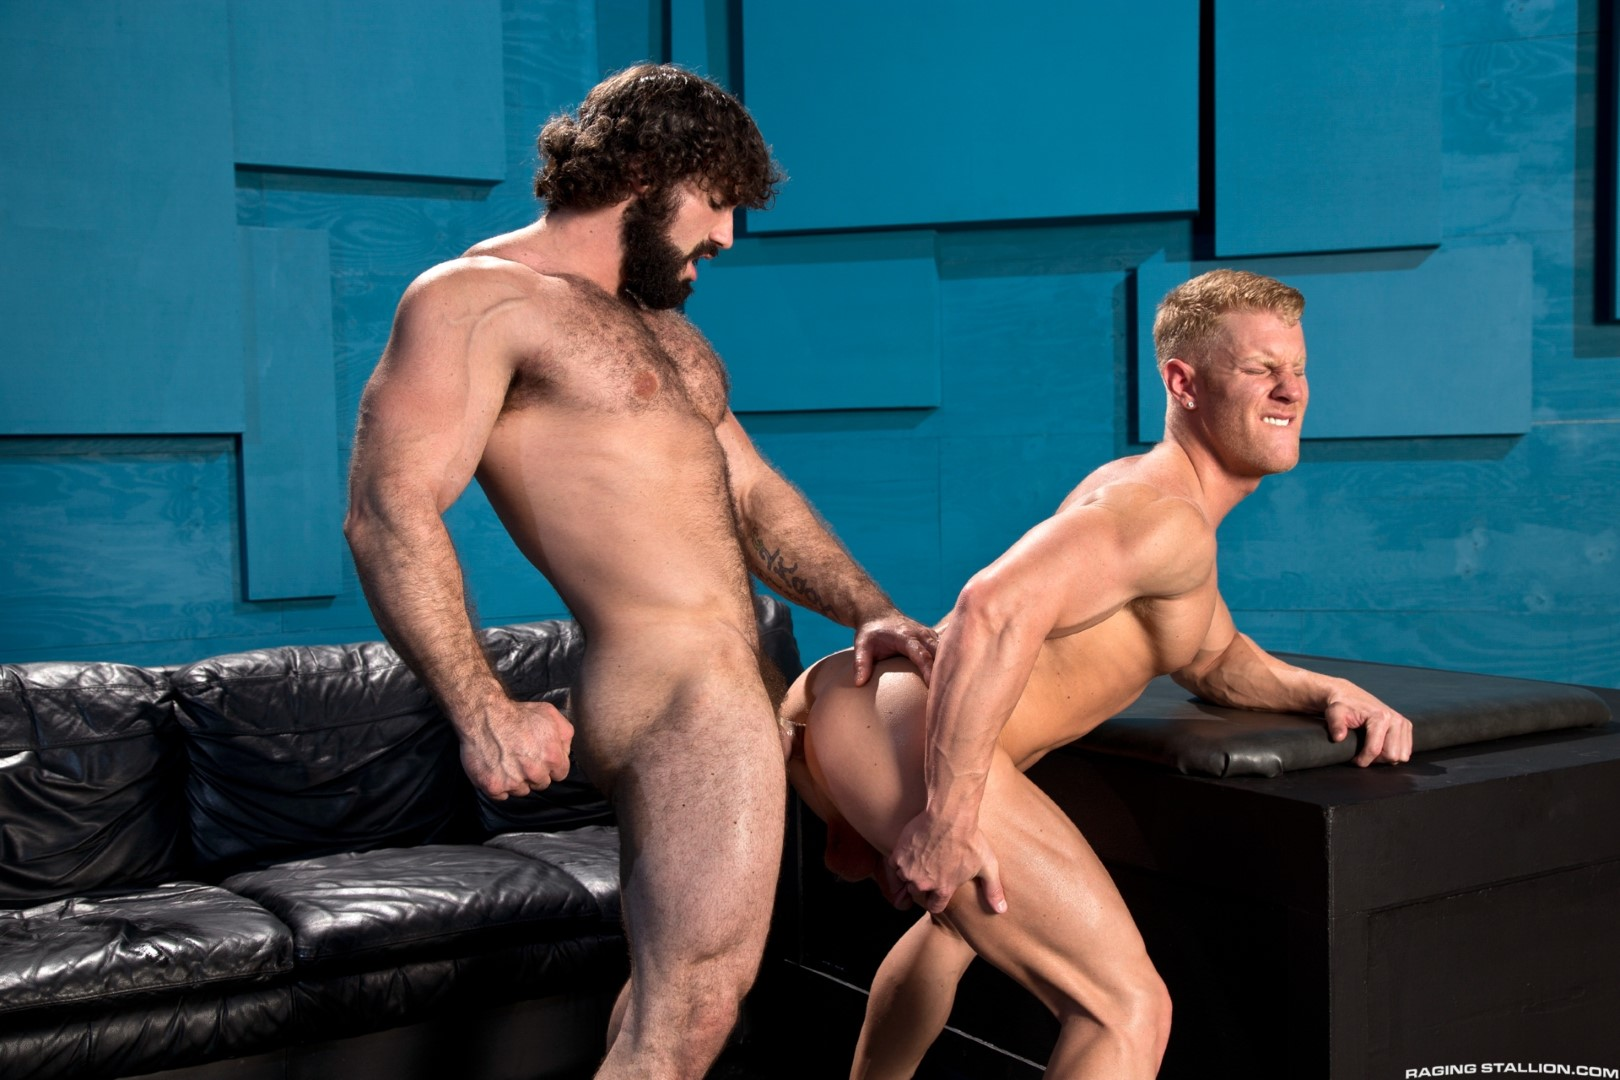 Raging-Stallion-Johnny-V-and-Jaxton-Wheeler-Hairy-Muscle-Hunk-Fucking-Amateur-Gay-Porn-07 Hairy Muscle Hunk Jaxton Wheeler Fucking A Muscle Jock